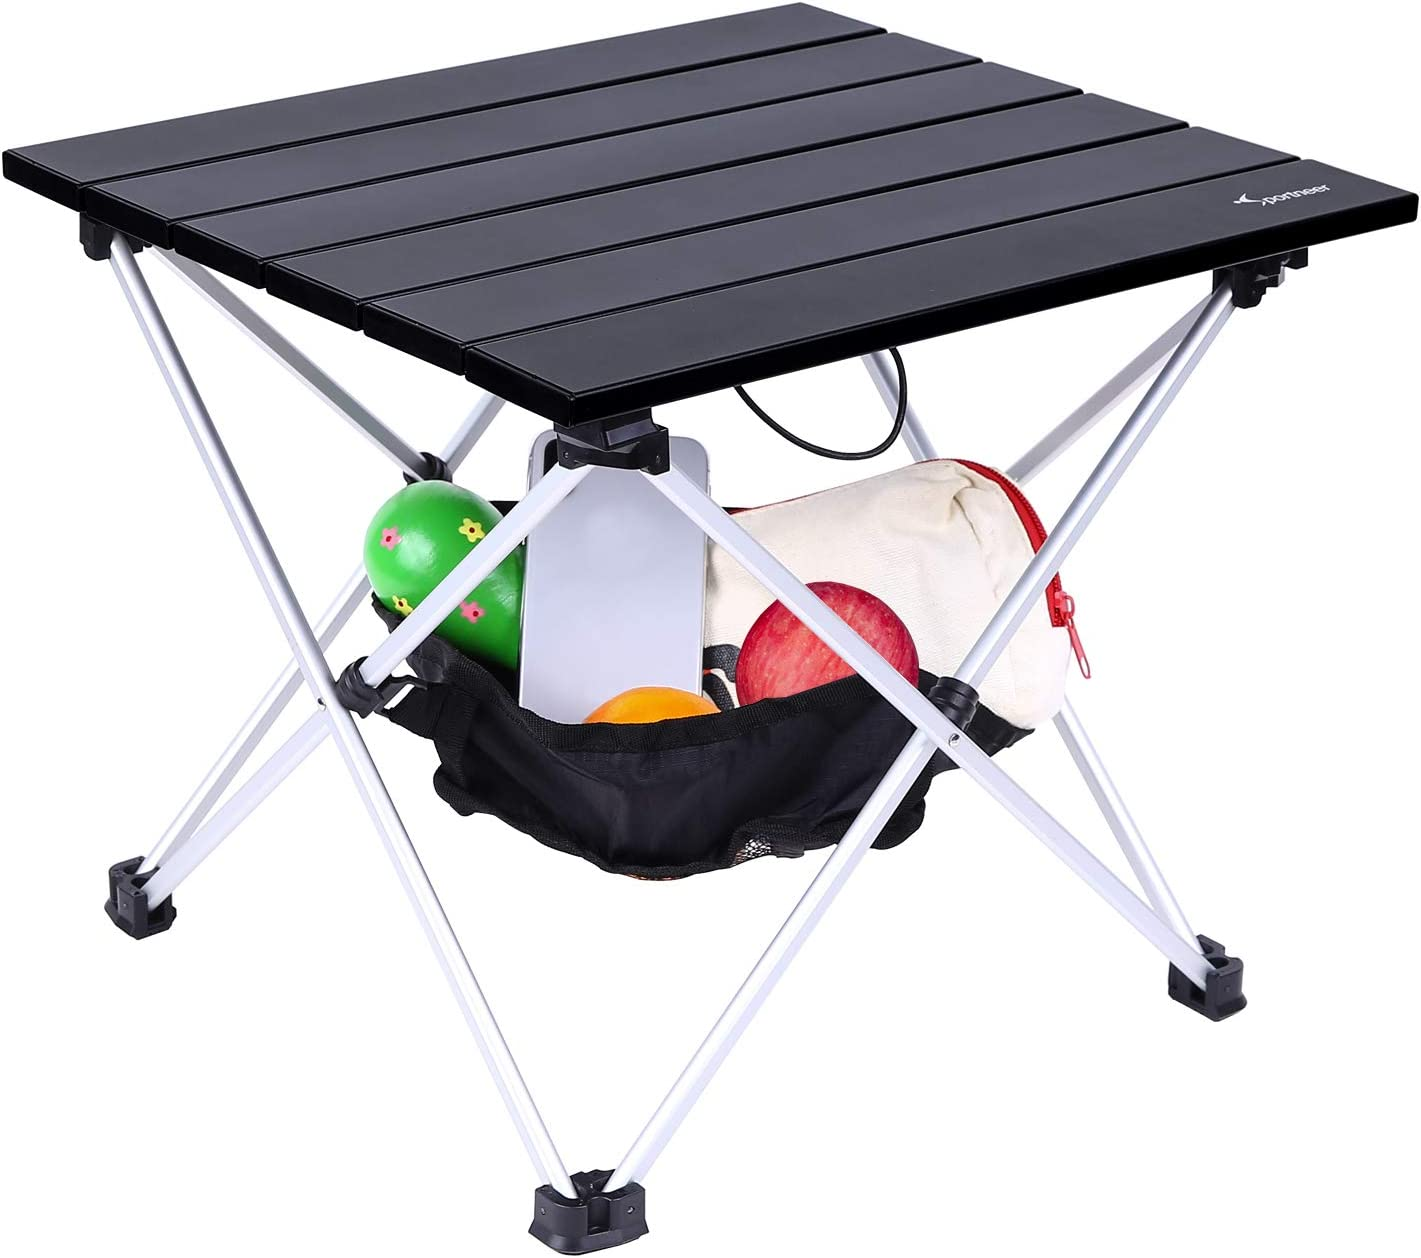 Hiking Outdoor Picnic Fishing Prefect for Dining Beach Sportneer Portable Camping Table Cooking Lightweight Folding Table with Aluminum Table Top and Carry Bag Cooking Cutting